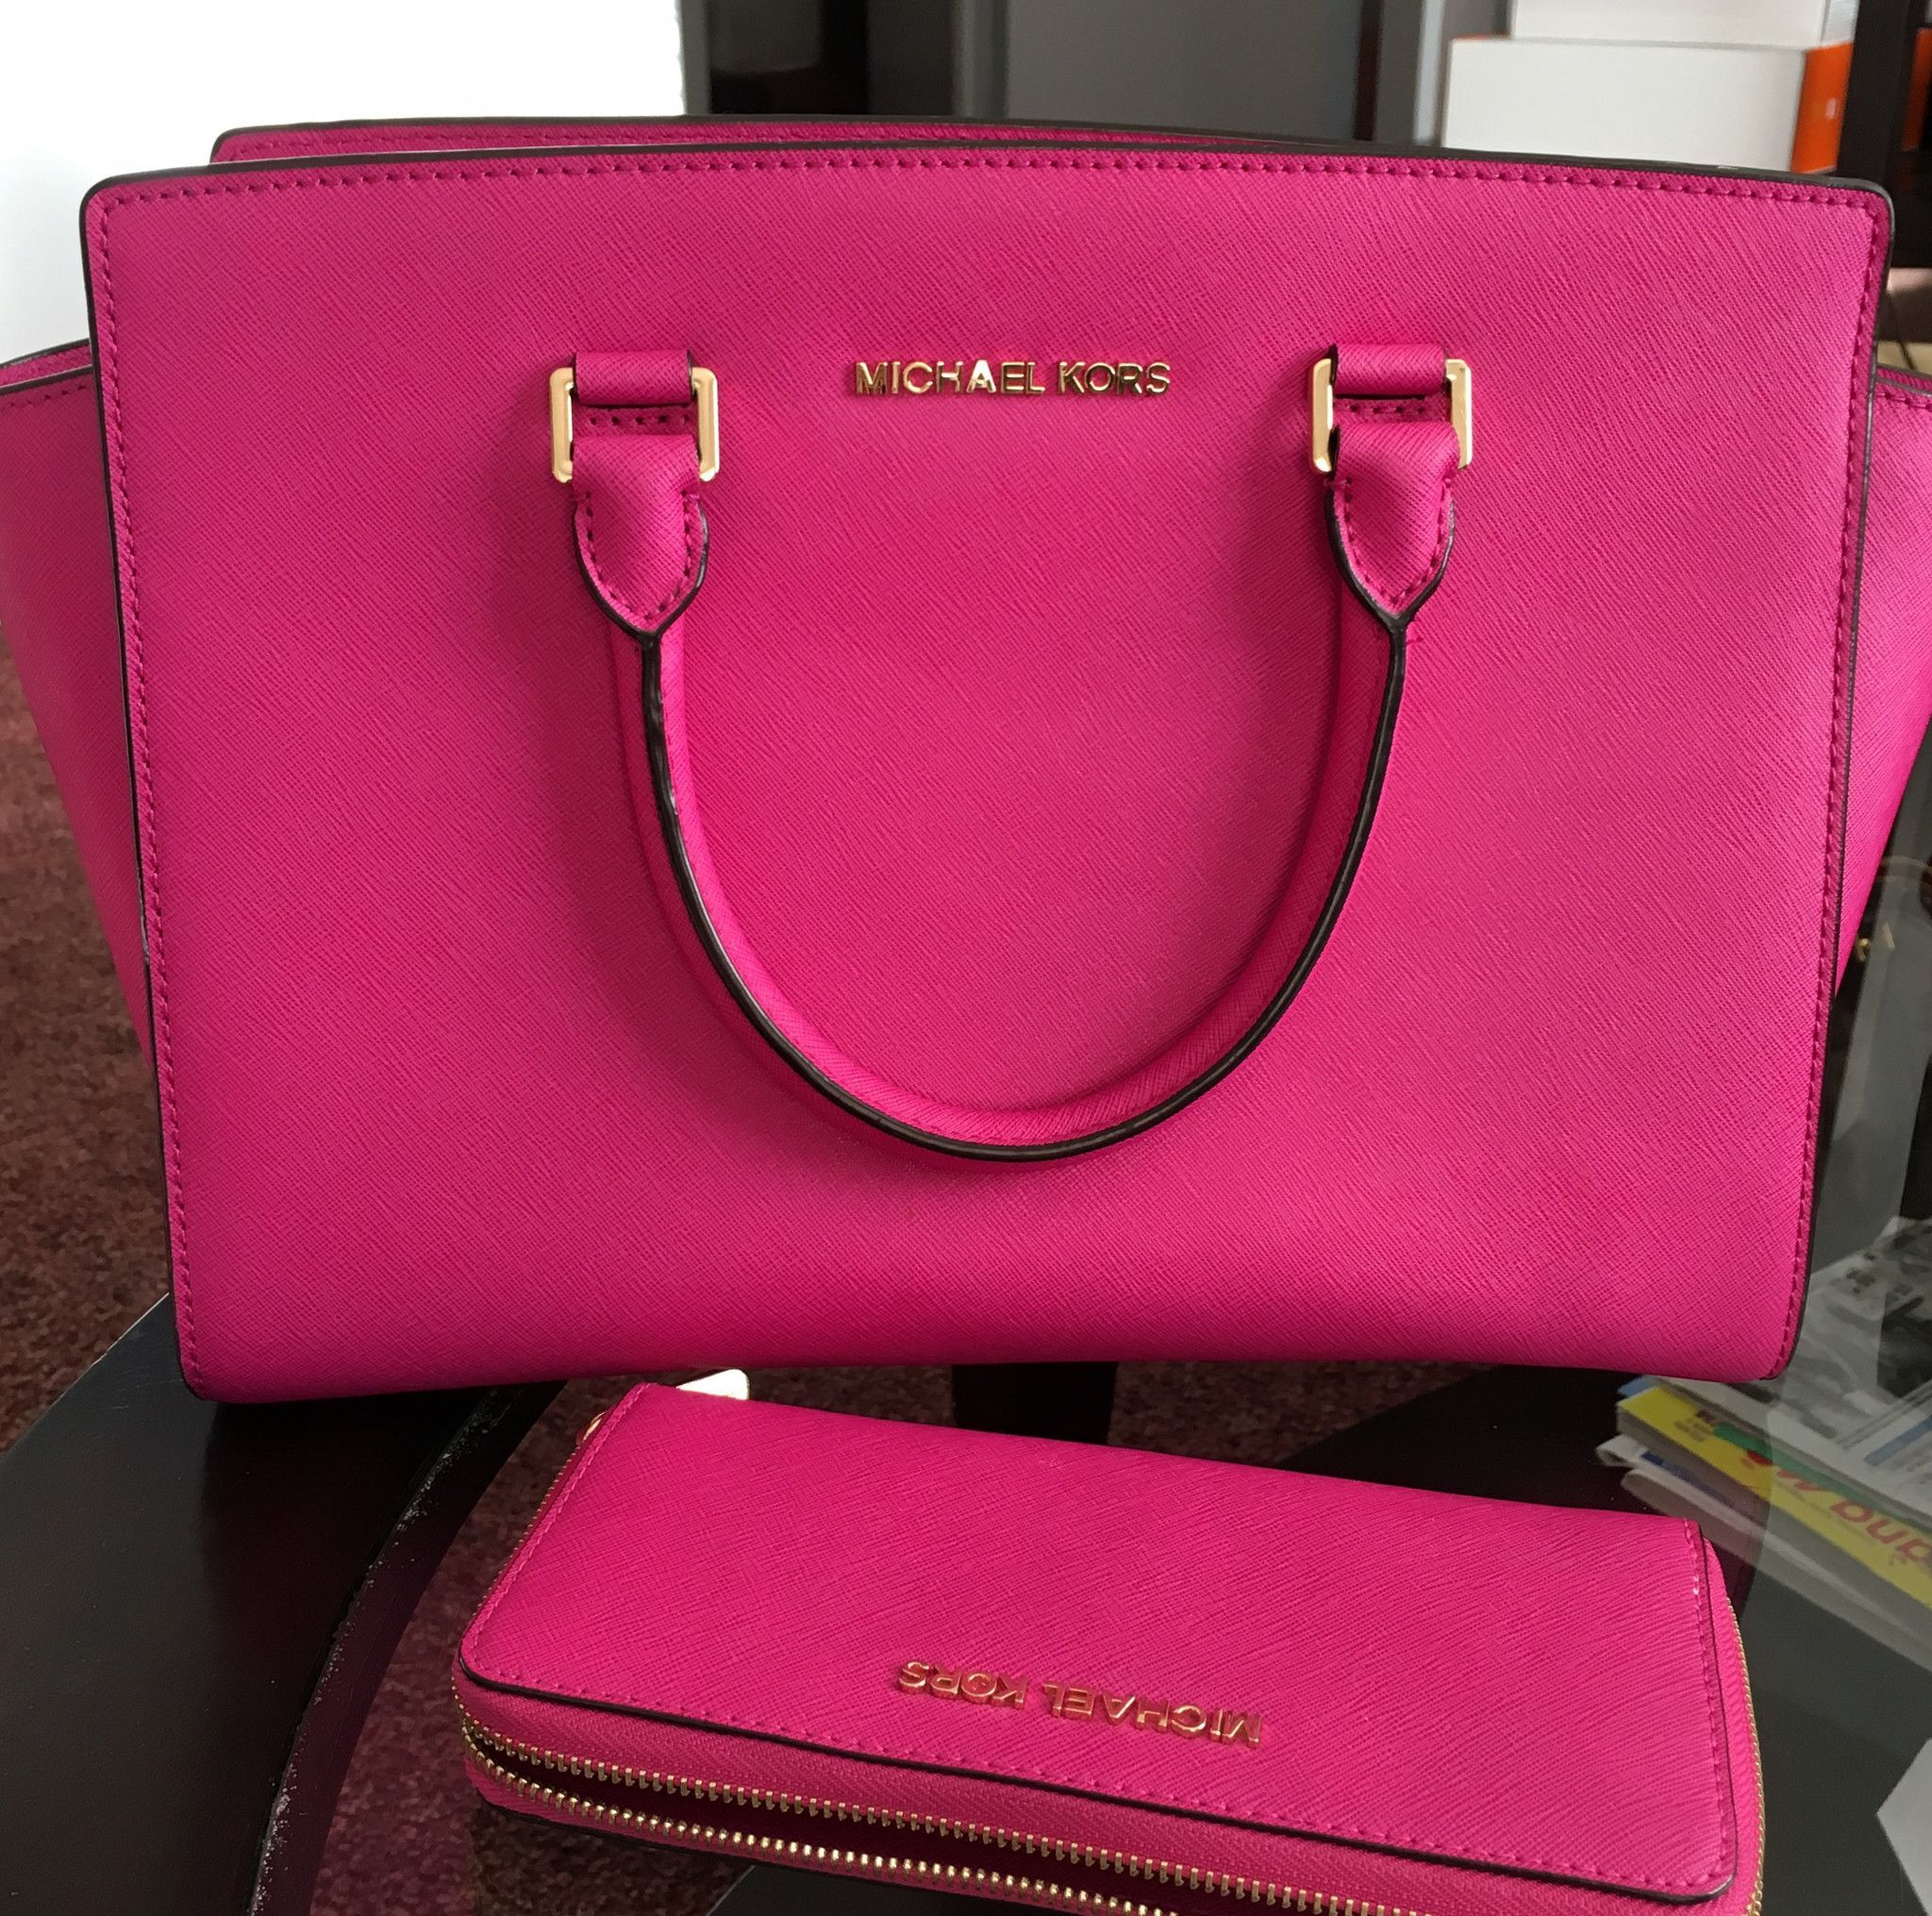 MICHAEL KORS Selma Handbag & Zip Around Wallet